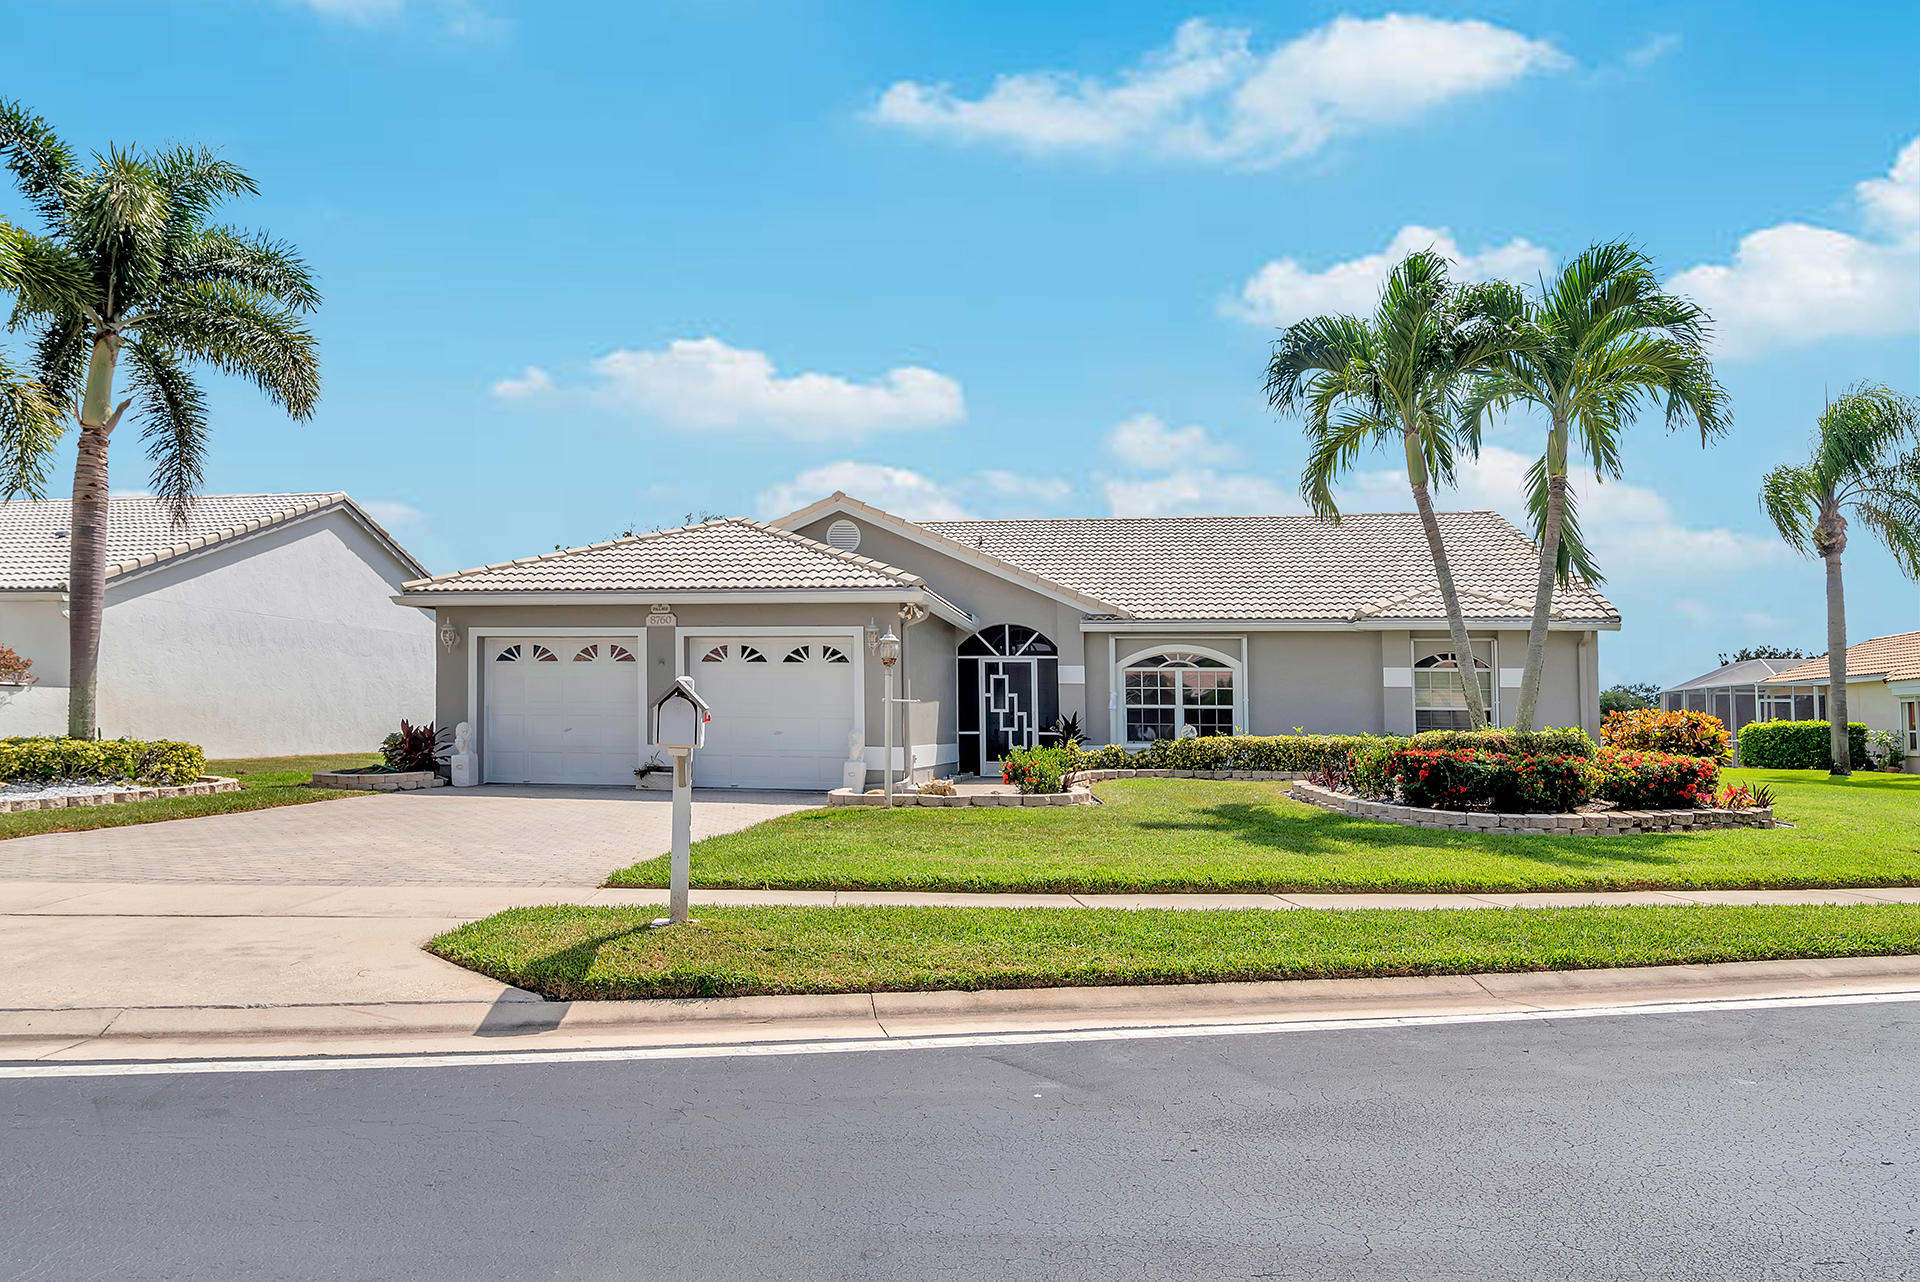 8760 Grassy Isle Trail, Lake Worth, Florida 33467, 3 Bedrooms Bedrooms, ,2 BathroomsBathrooms,Single Family,For Sale,Lakes of Sherbrooke,Grassy Isle,RX-10498241